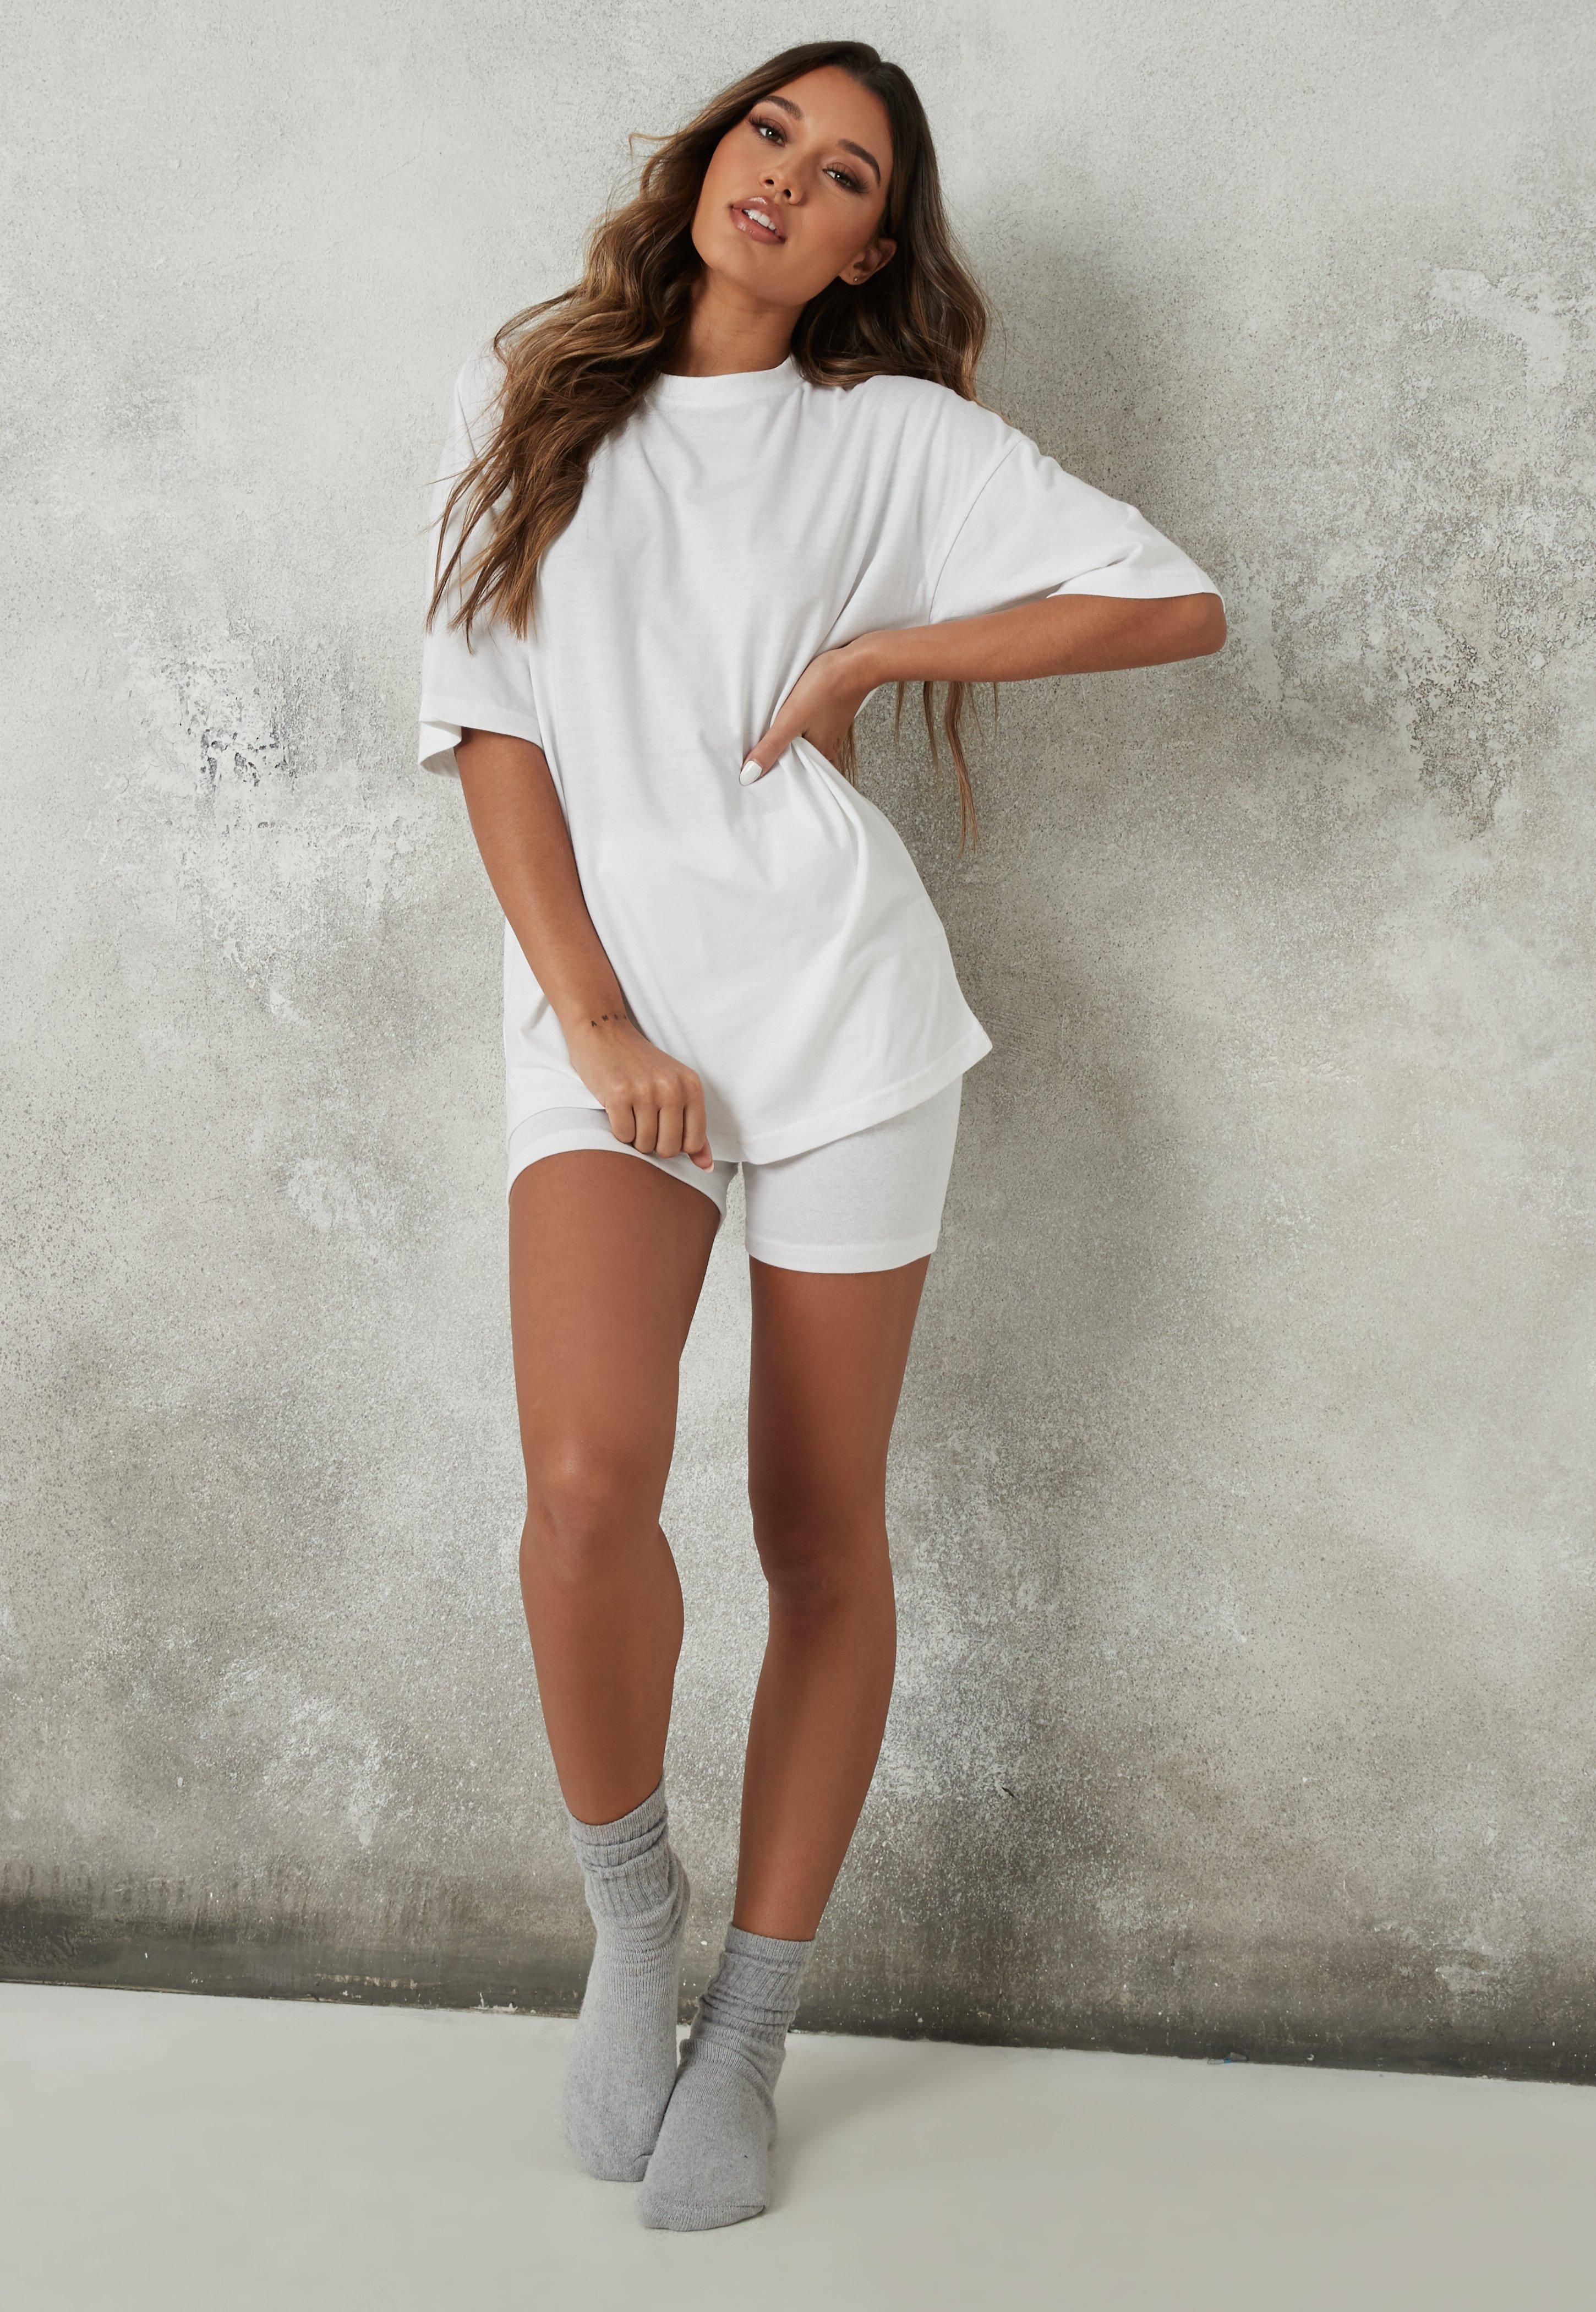 oversized t shirt with cycle shorts